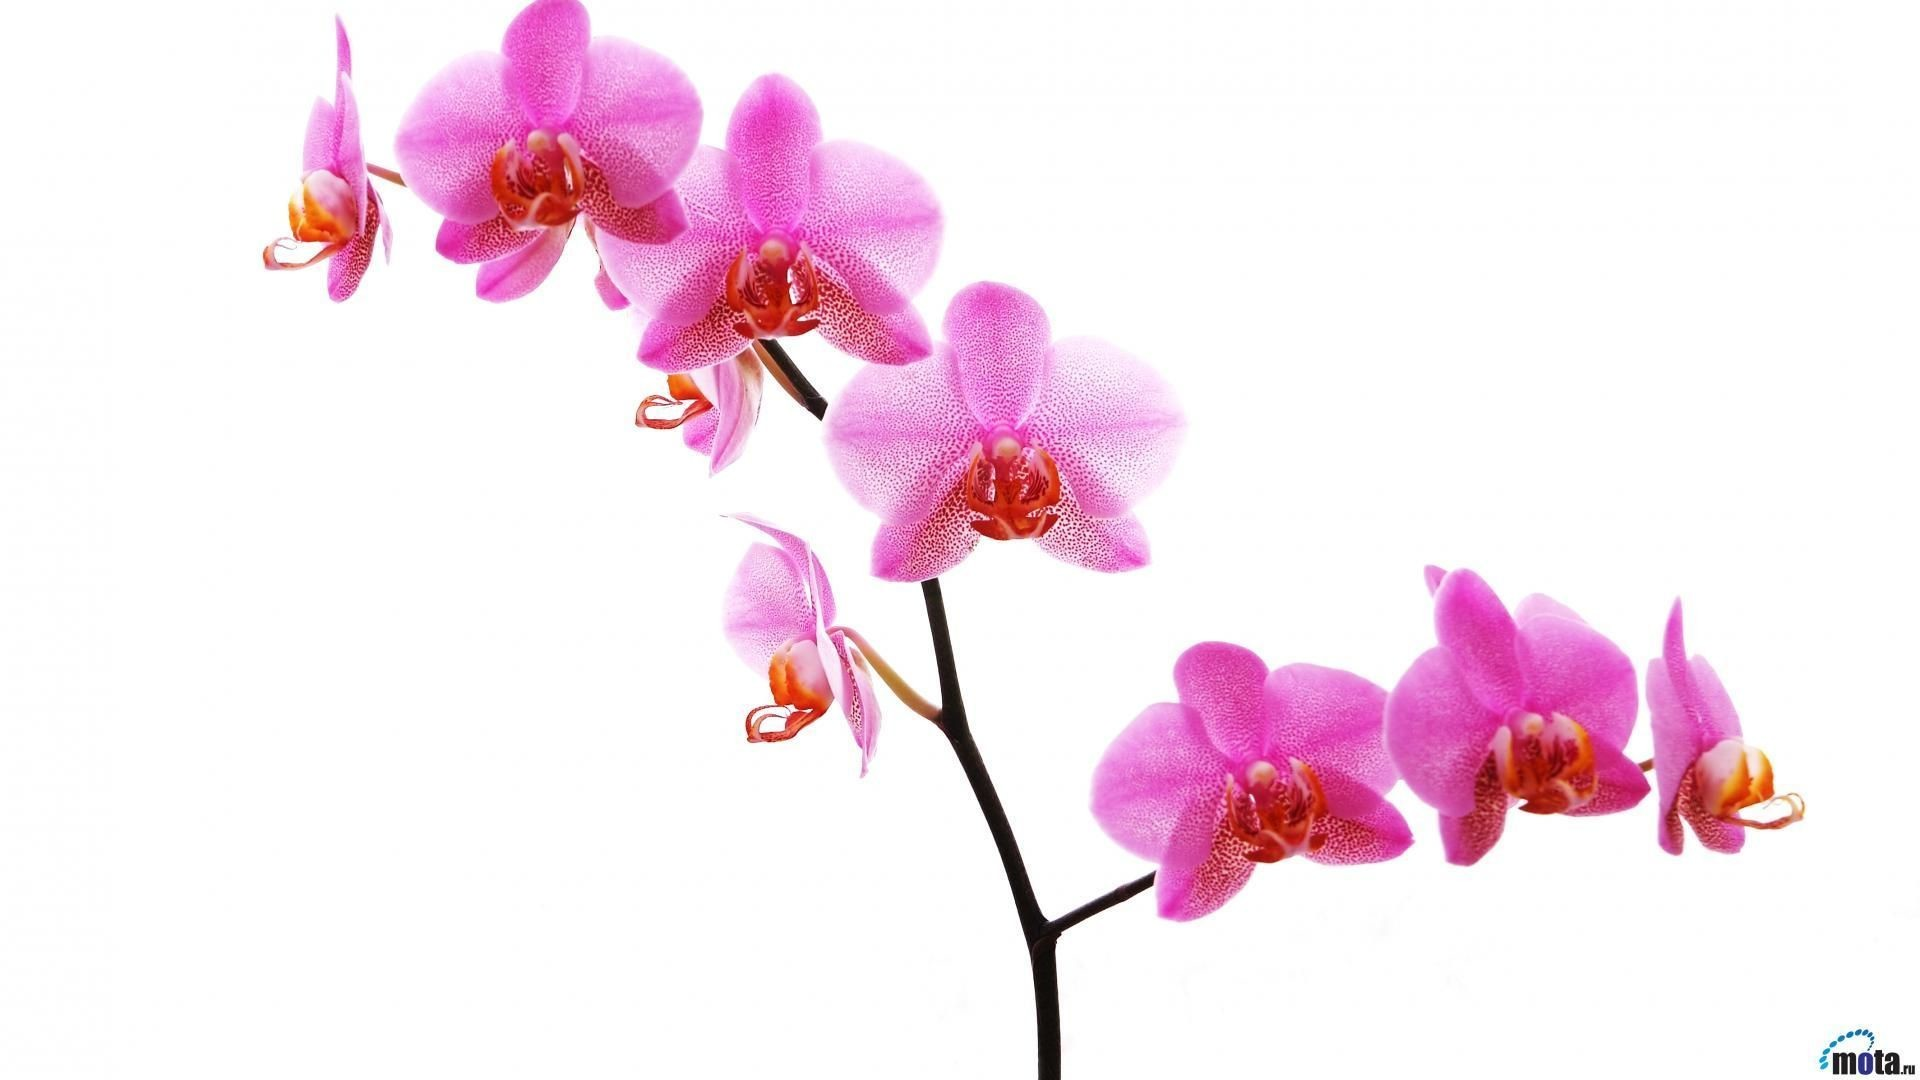 1920x1080 Top Orchid White Phone Wallpaper Images for Pinterest